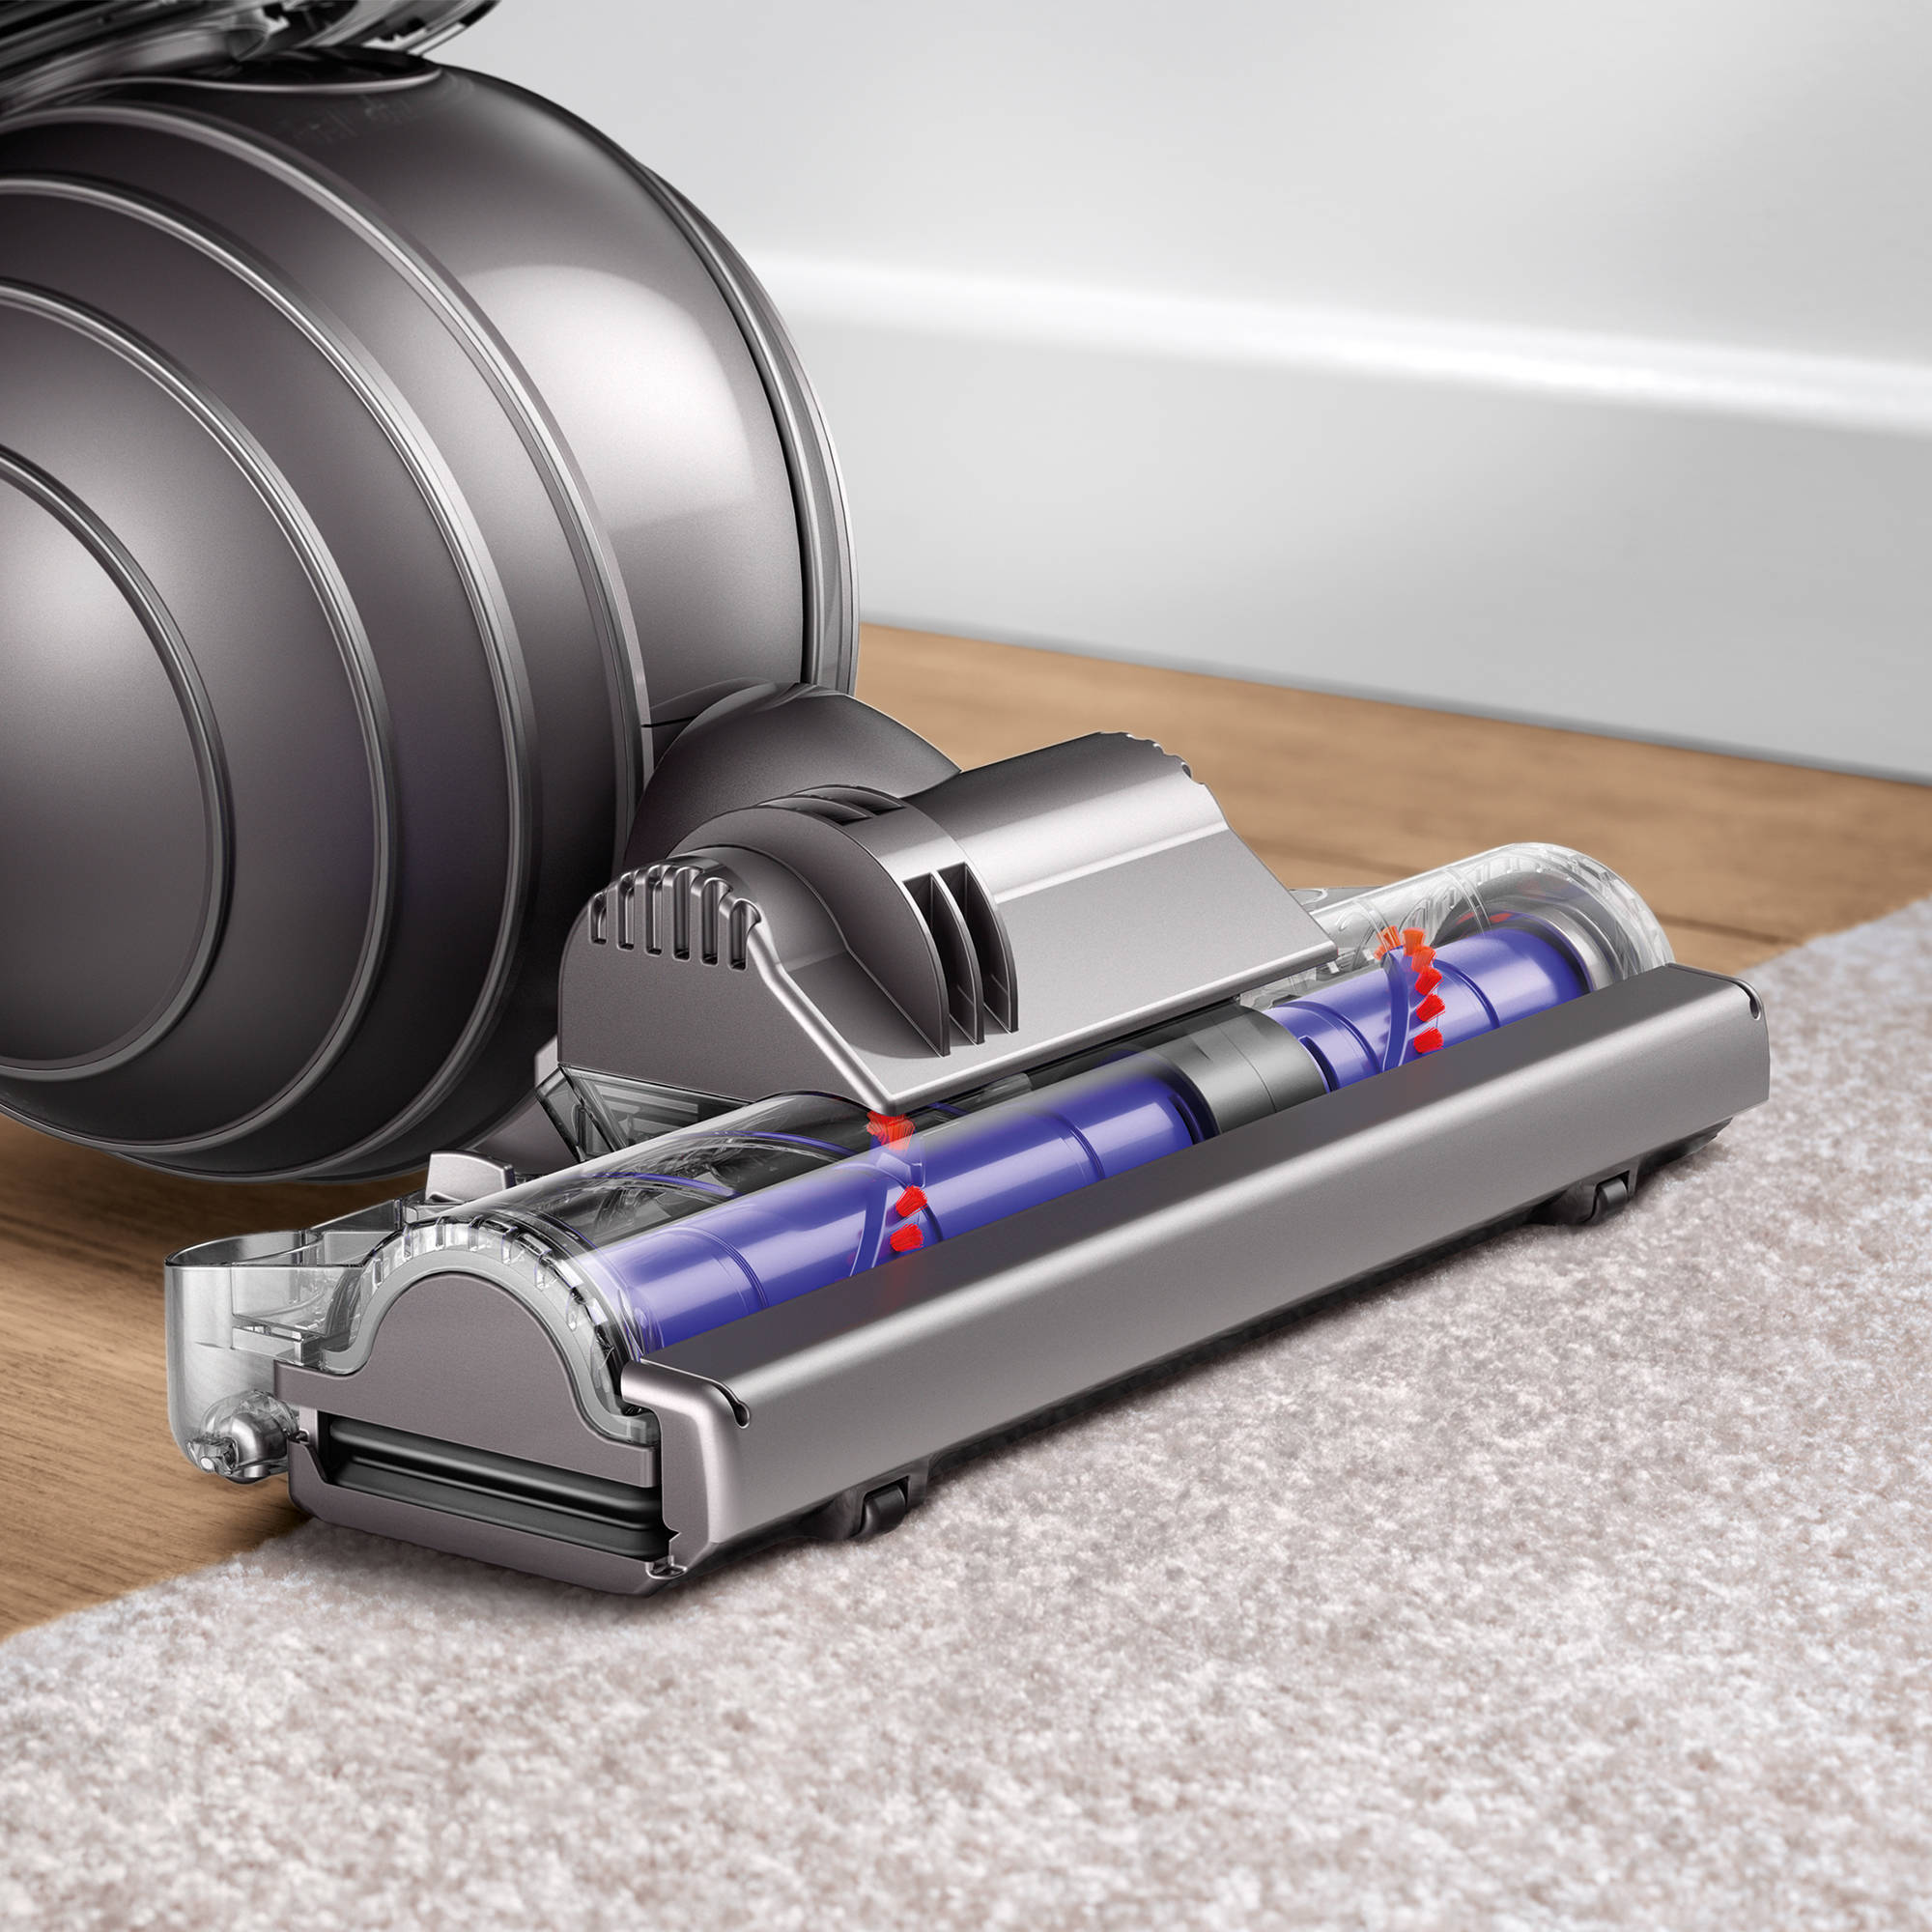 warranty vacuum limited fb brush electric maid z year a stick bfm broom floor to bare products fuller